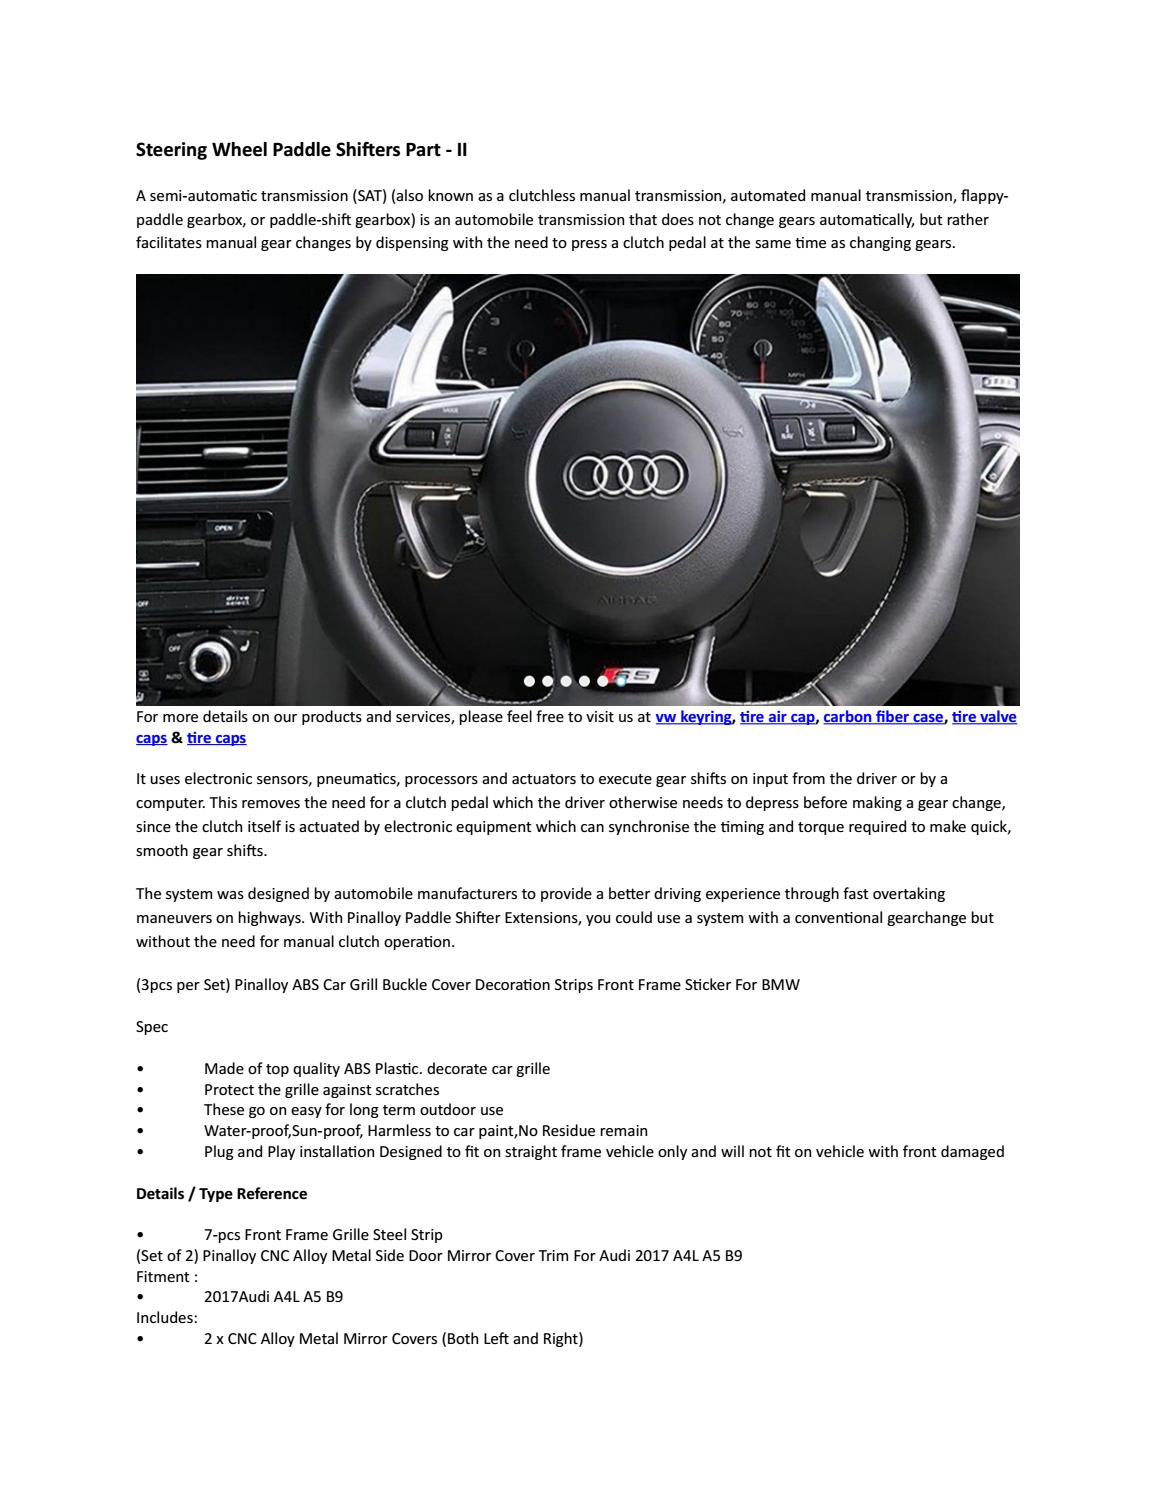 c3a5e397d07 Steering wheel paddle shifters part ii by pinalloy - issuu